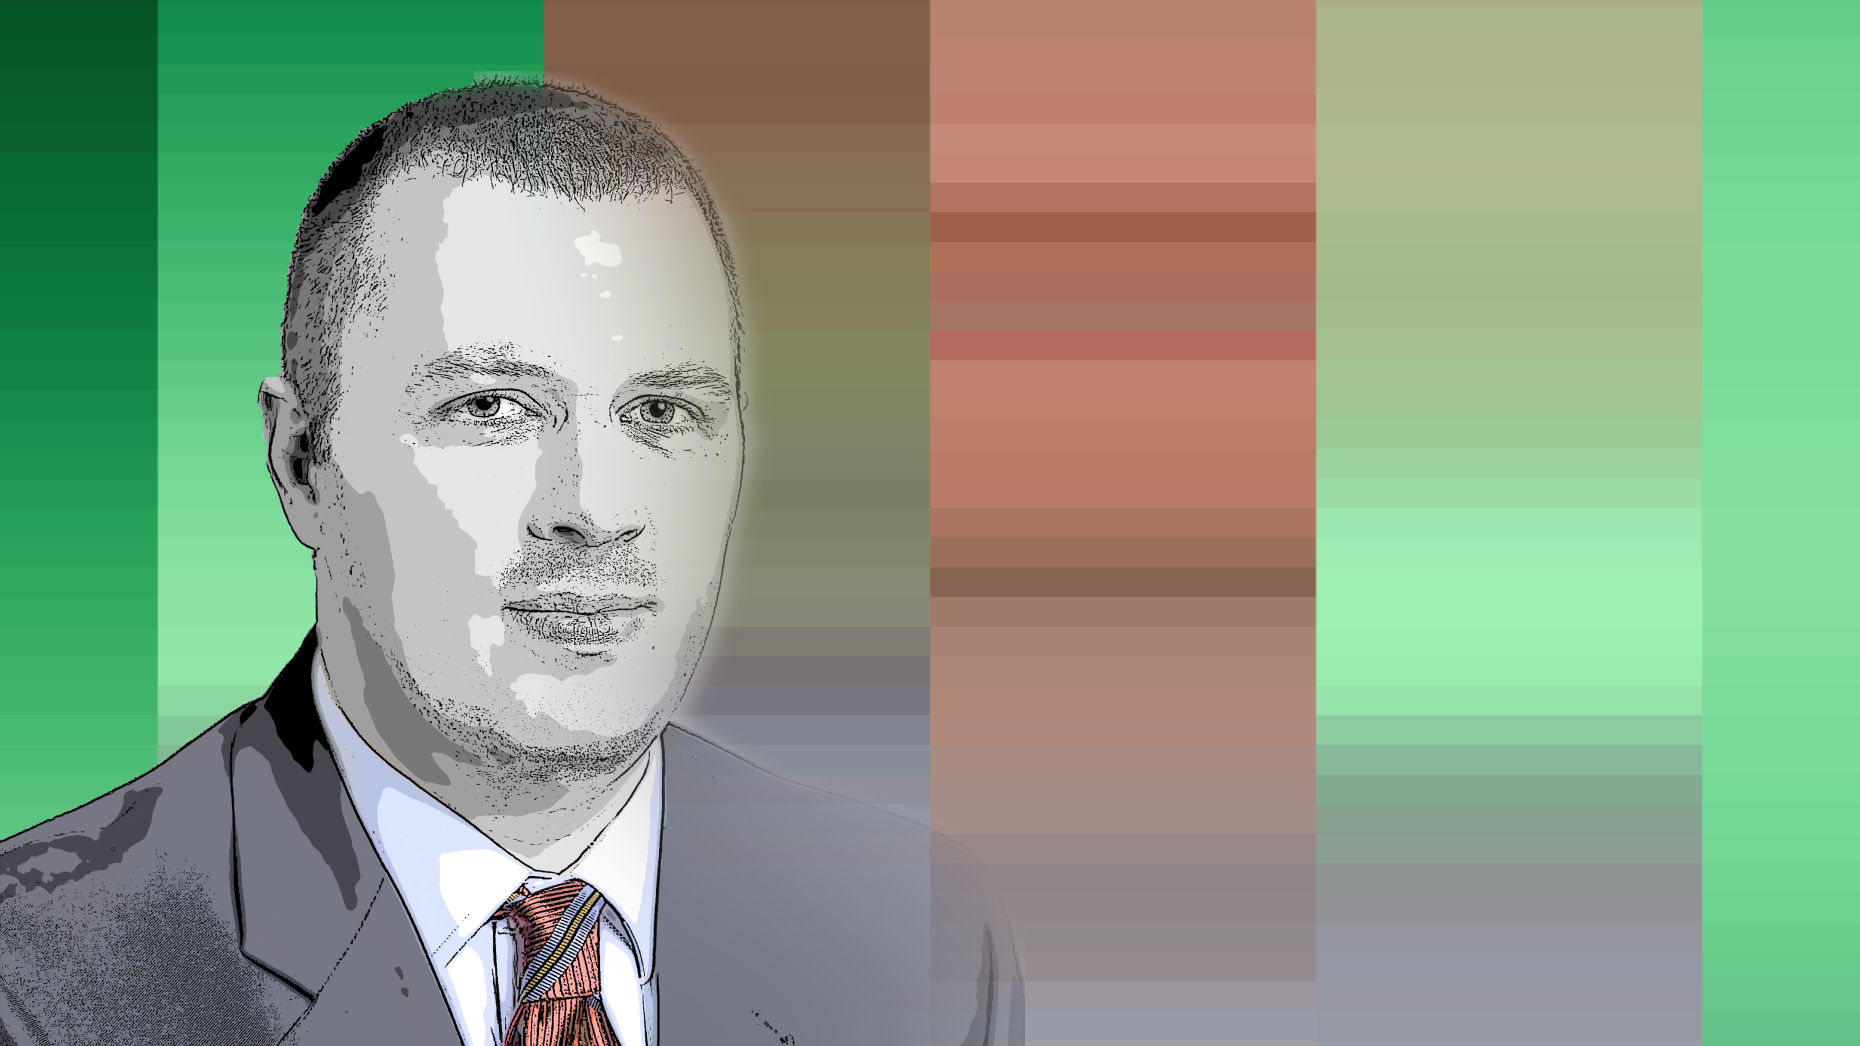 T. Rowe Price fund manager Paul Greene. Art by Matt Vascellaro.